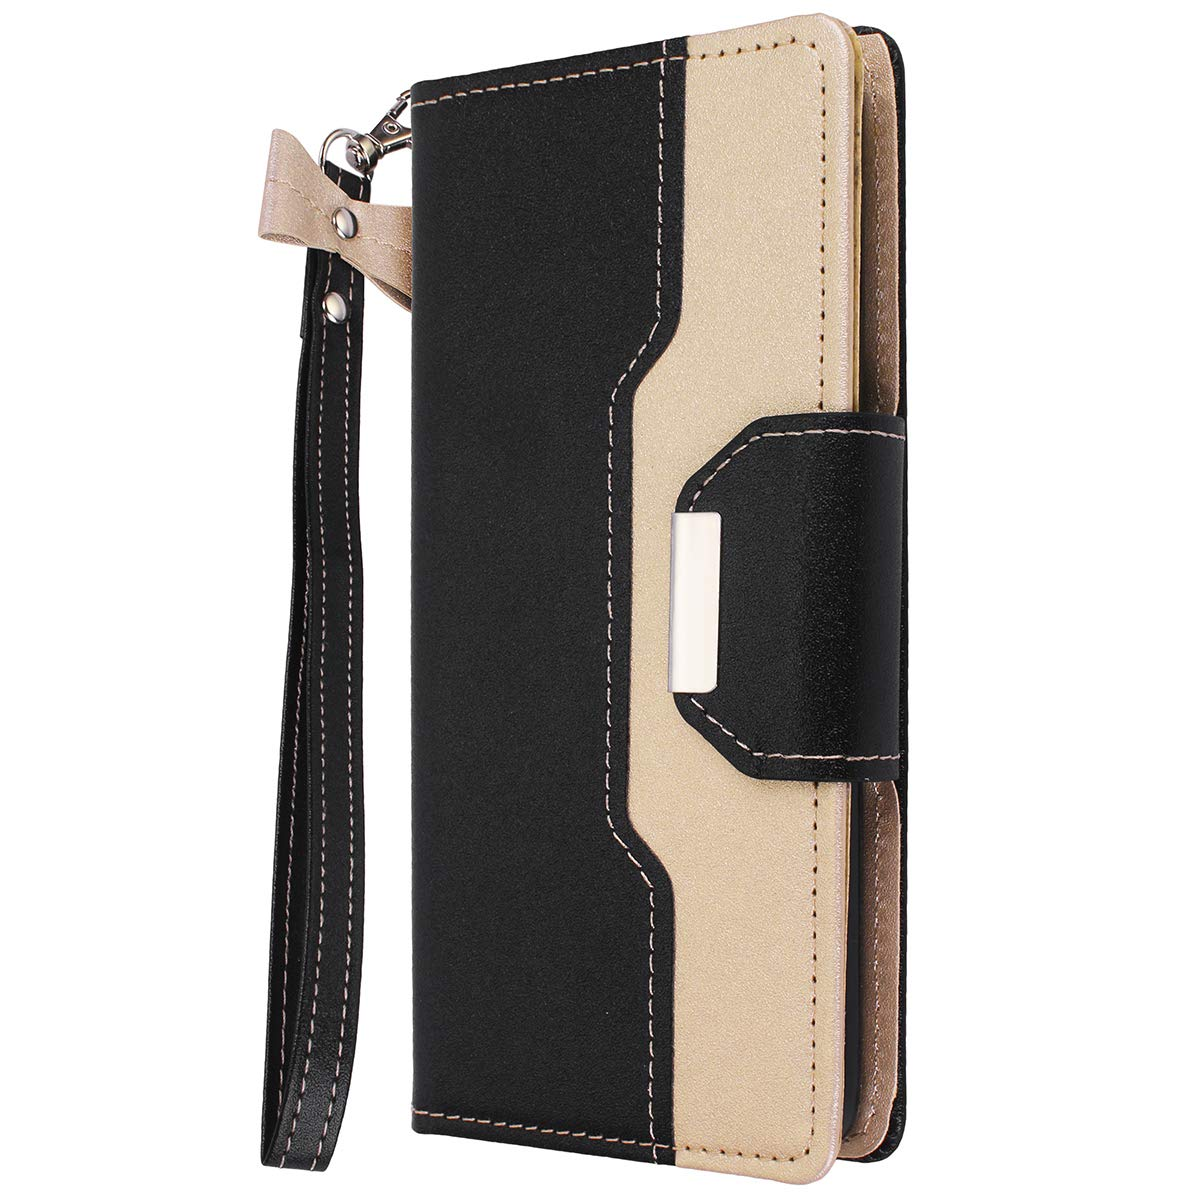 Galaxy S10/S10+ Wallet Full Body Protection Case PU Leather with Makeup Mirror and Bow-Knot Strap Protective Stand Case